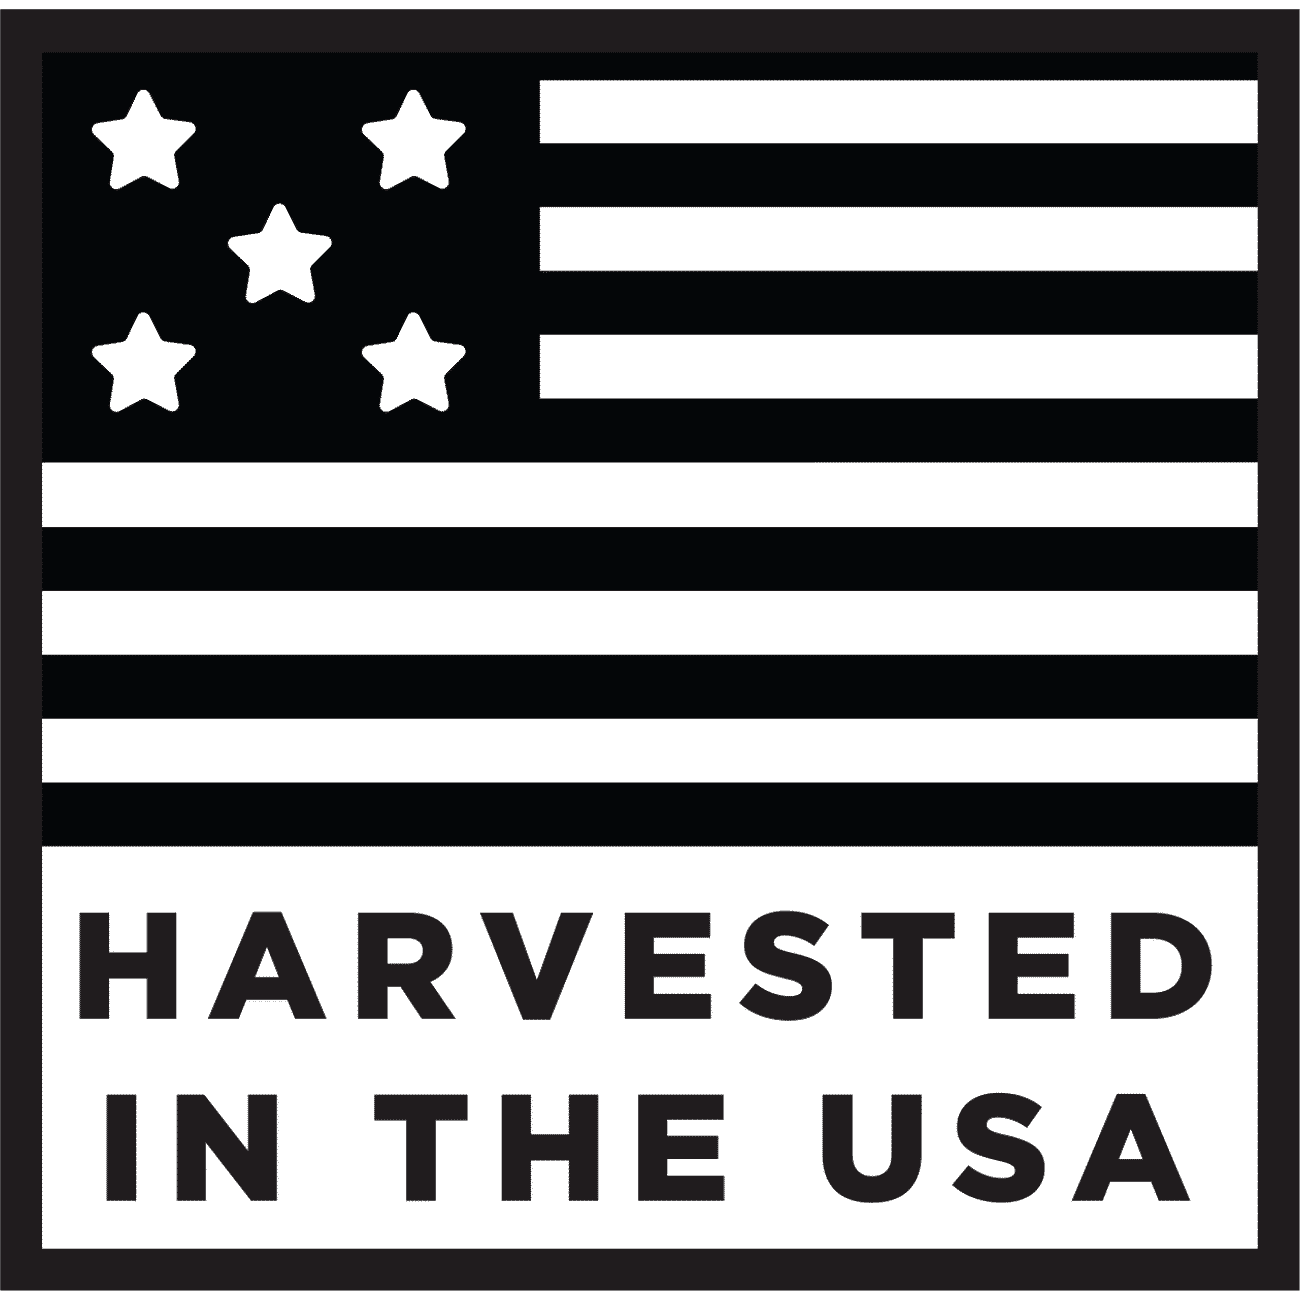 Harvested in the USA